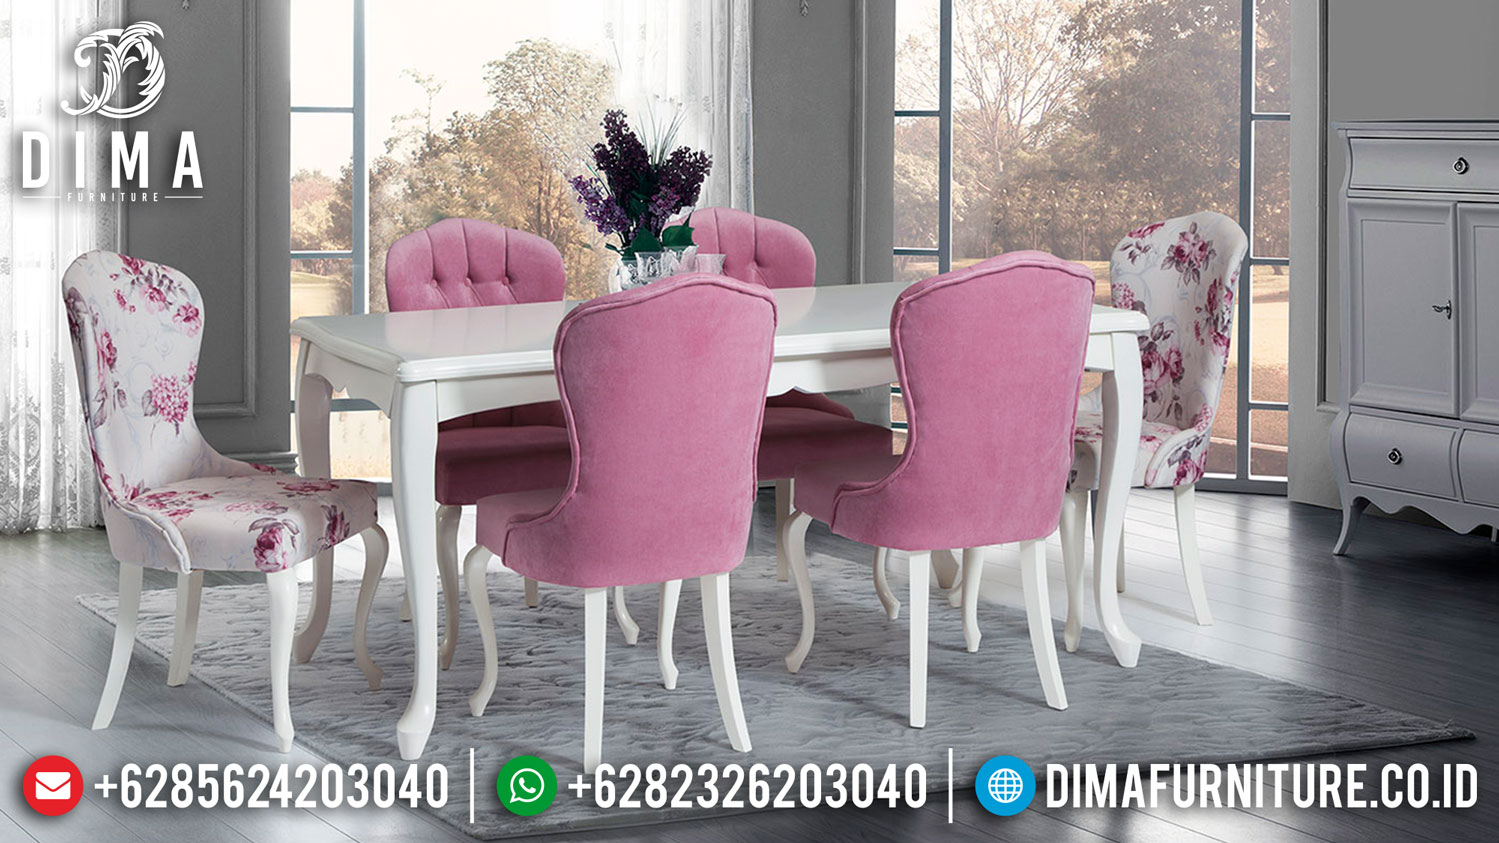 New Meja Makan Minimalis Shabby Fabric Best Quality Foam Furniture Jepara TTJ-1288